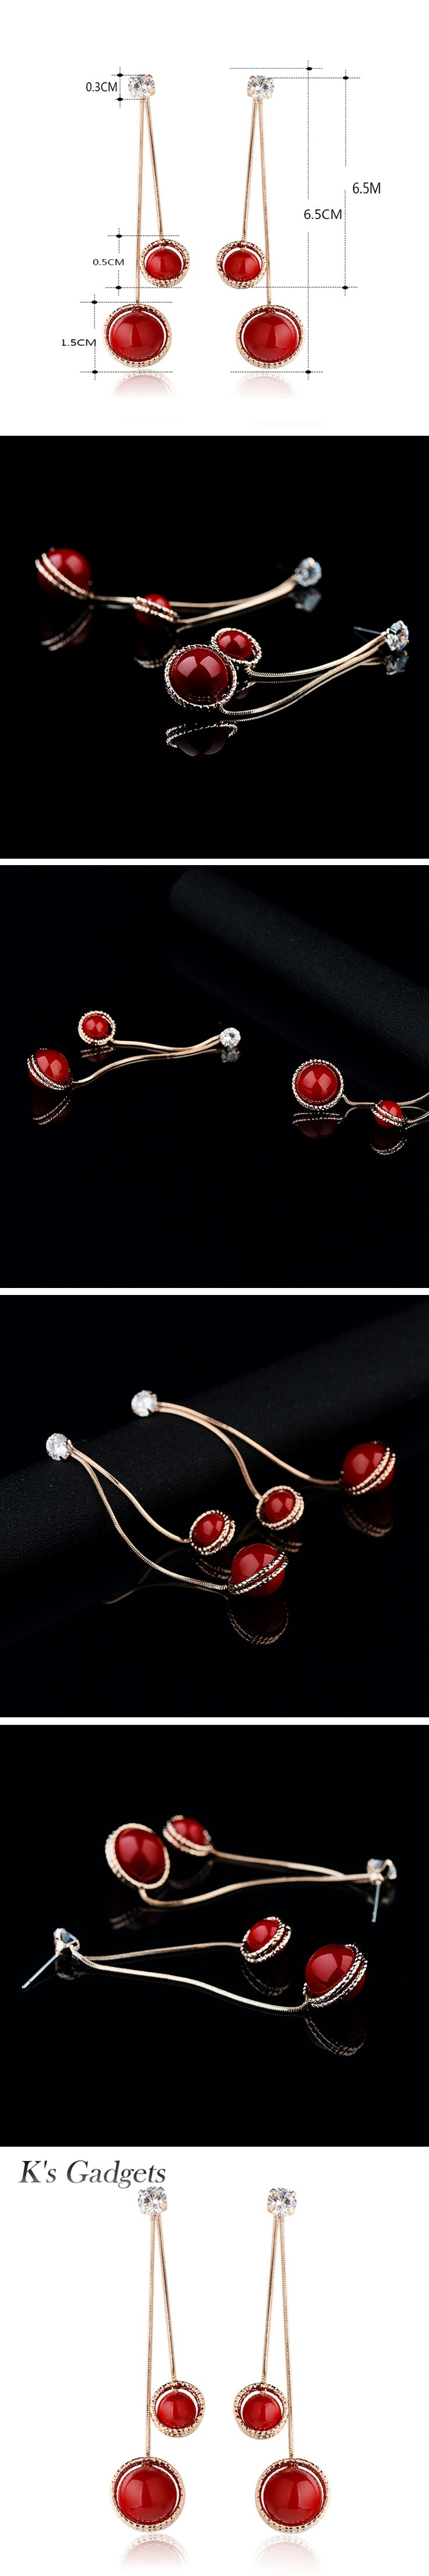 Long Earrings With Stones Artificial Red Coral Earrings Rose Gold color For Women Rhinestone Big Drop Earrings Fashion Jewelry